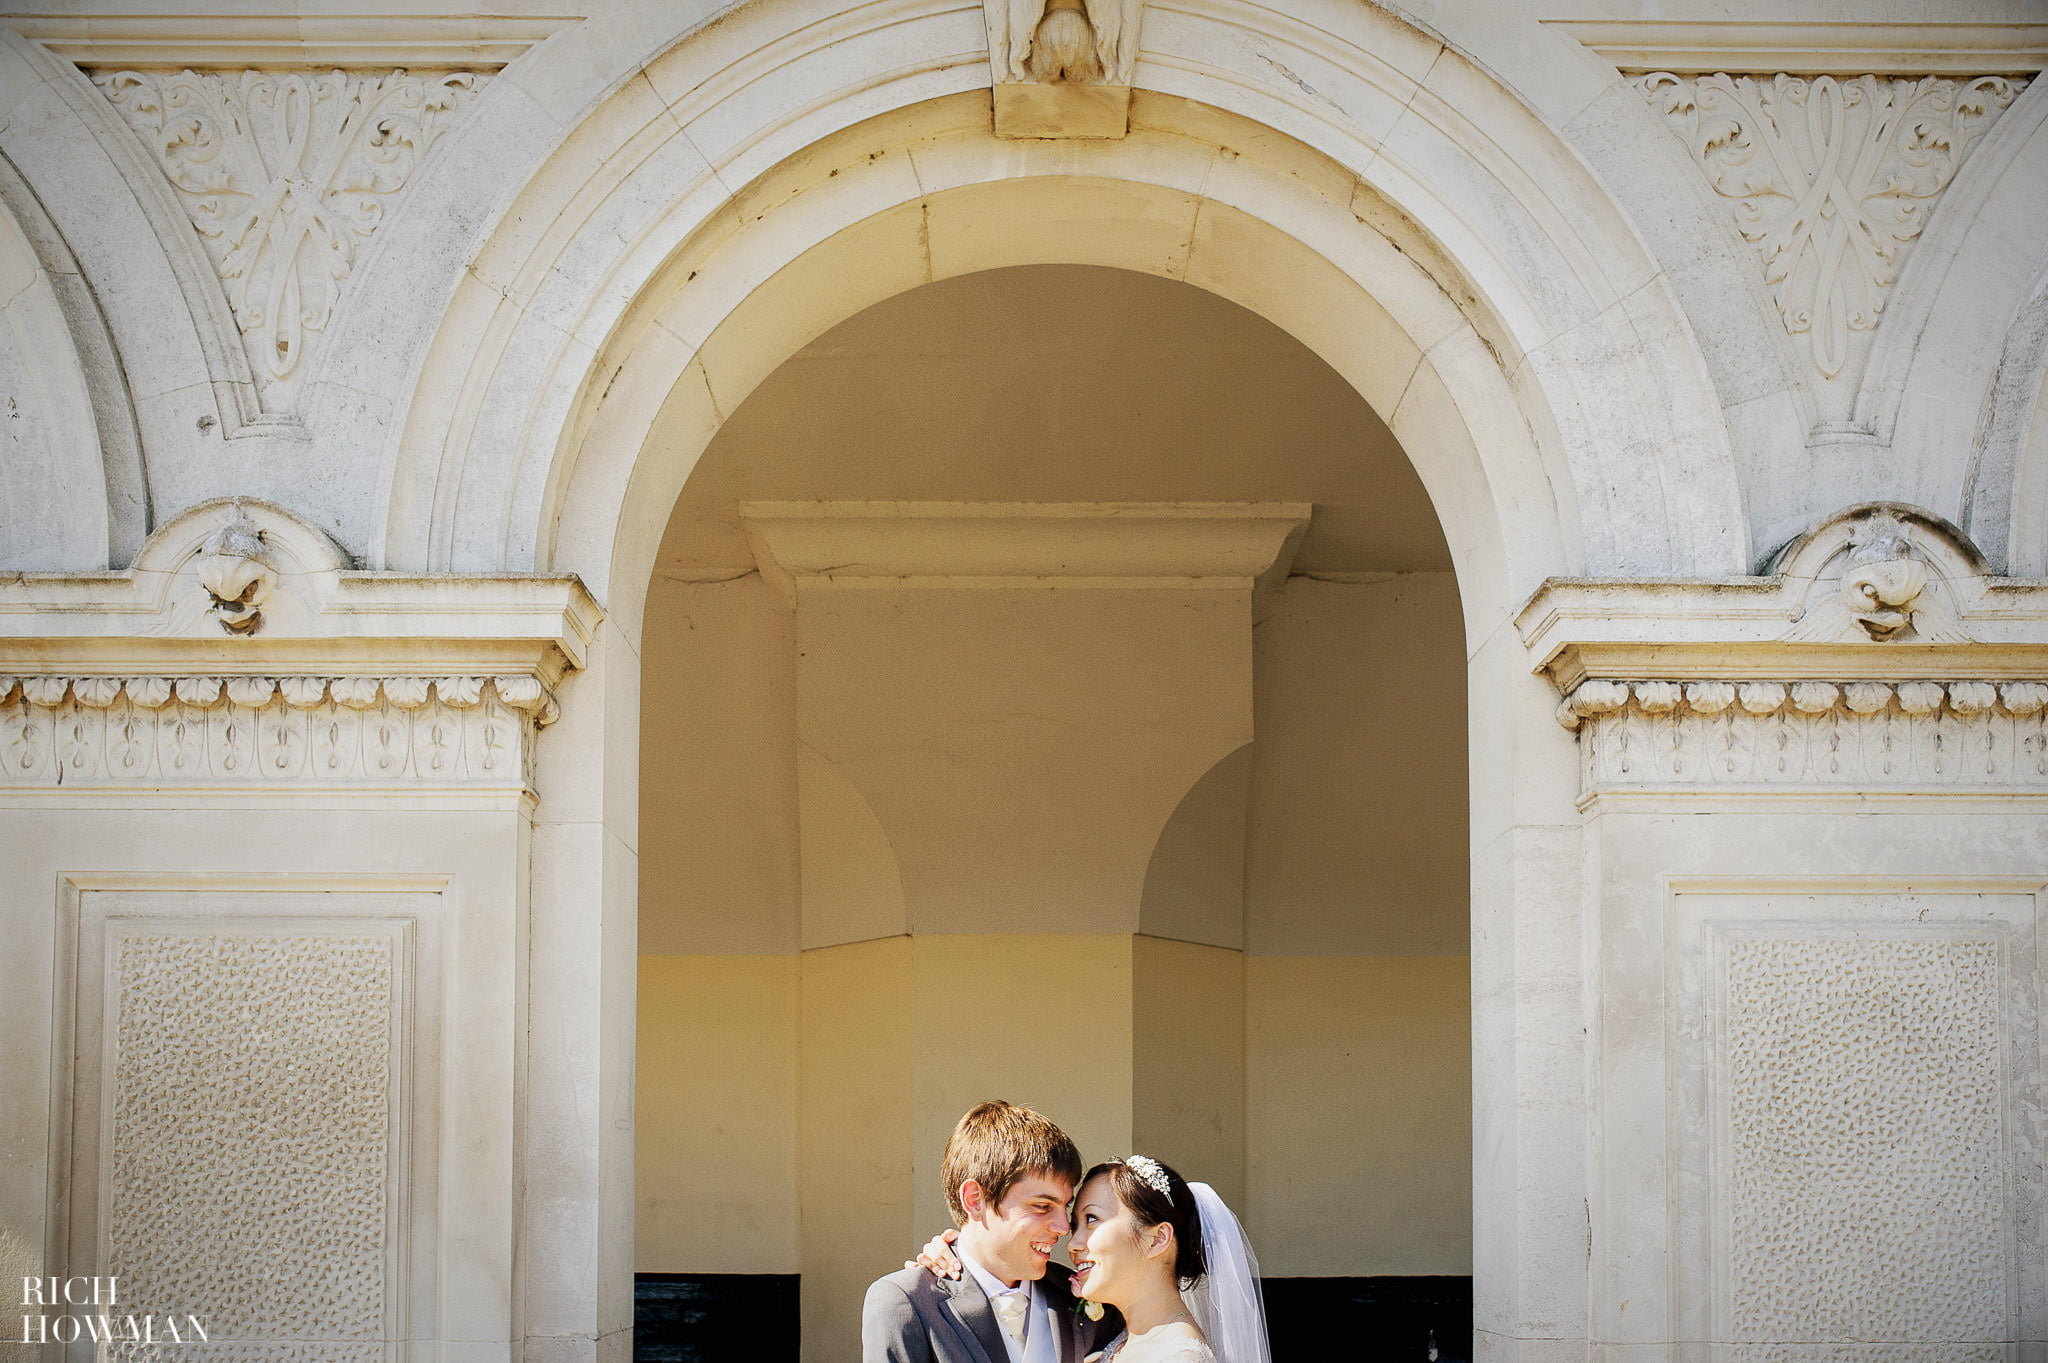 Notting Hill Wedding | Wedding Photographer London - Rich Howman 24